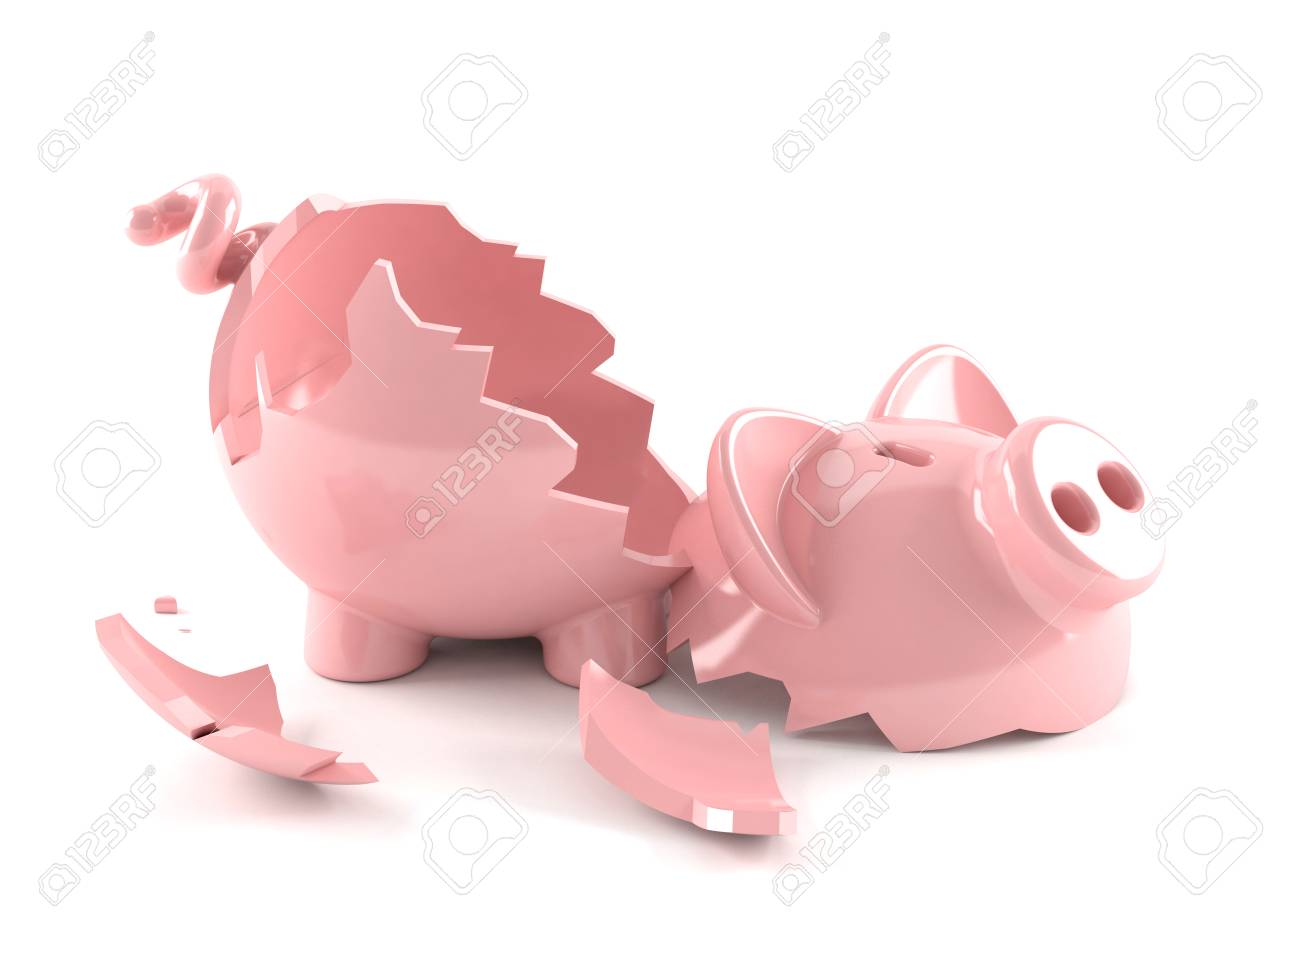 Broken Piggy Bank Isolated On White Background Stock Photo ...